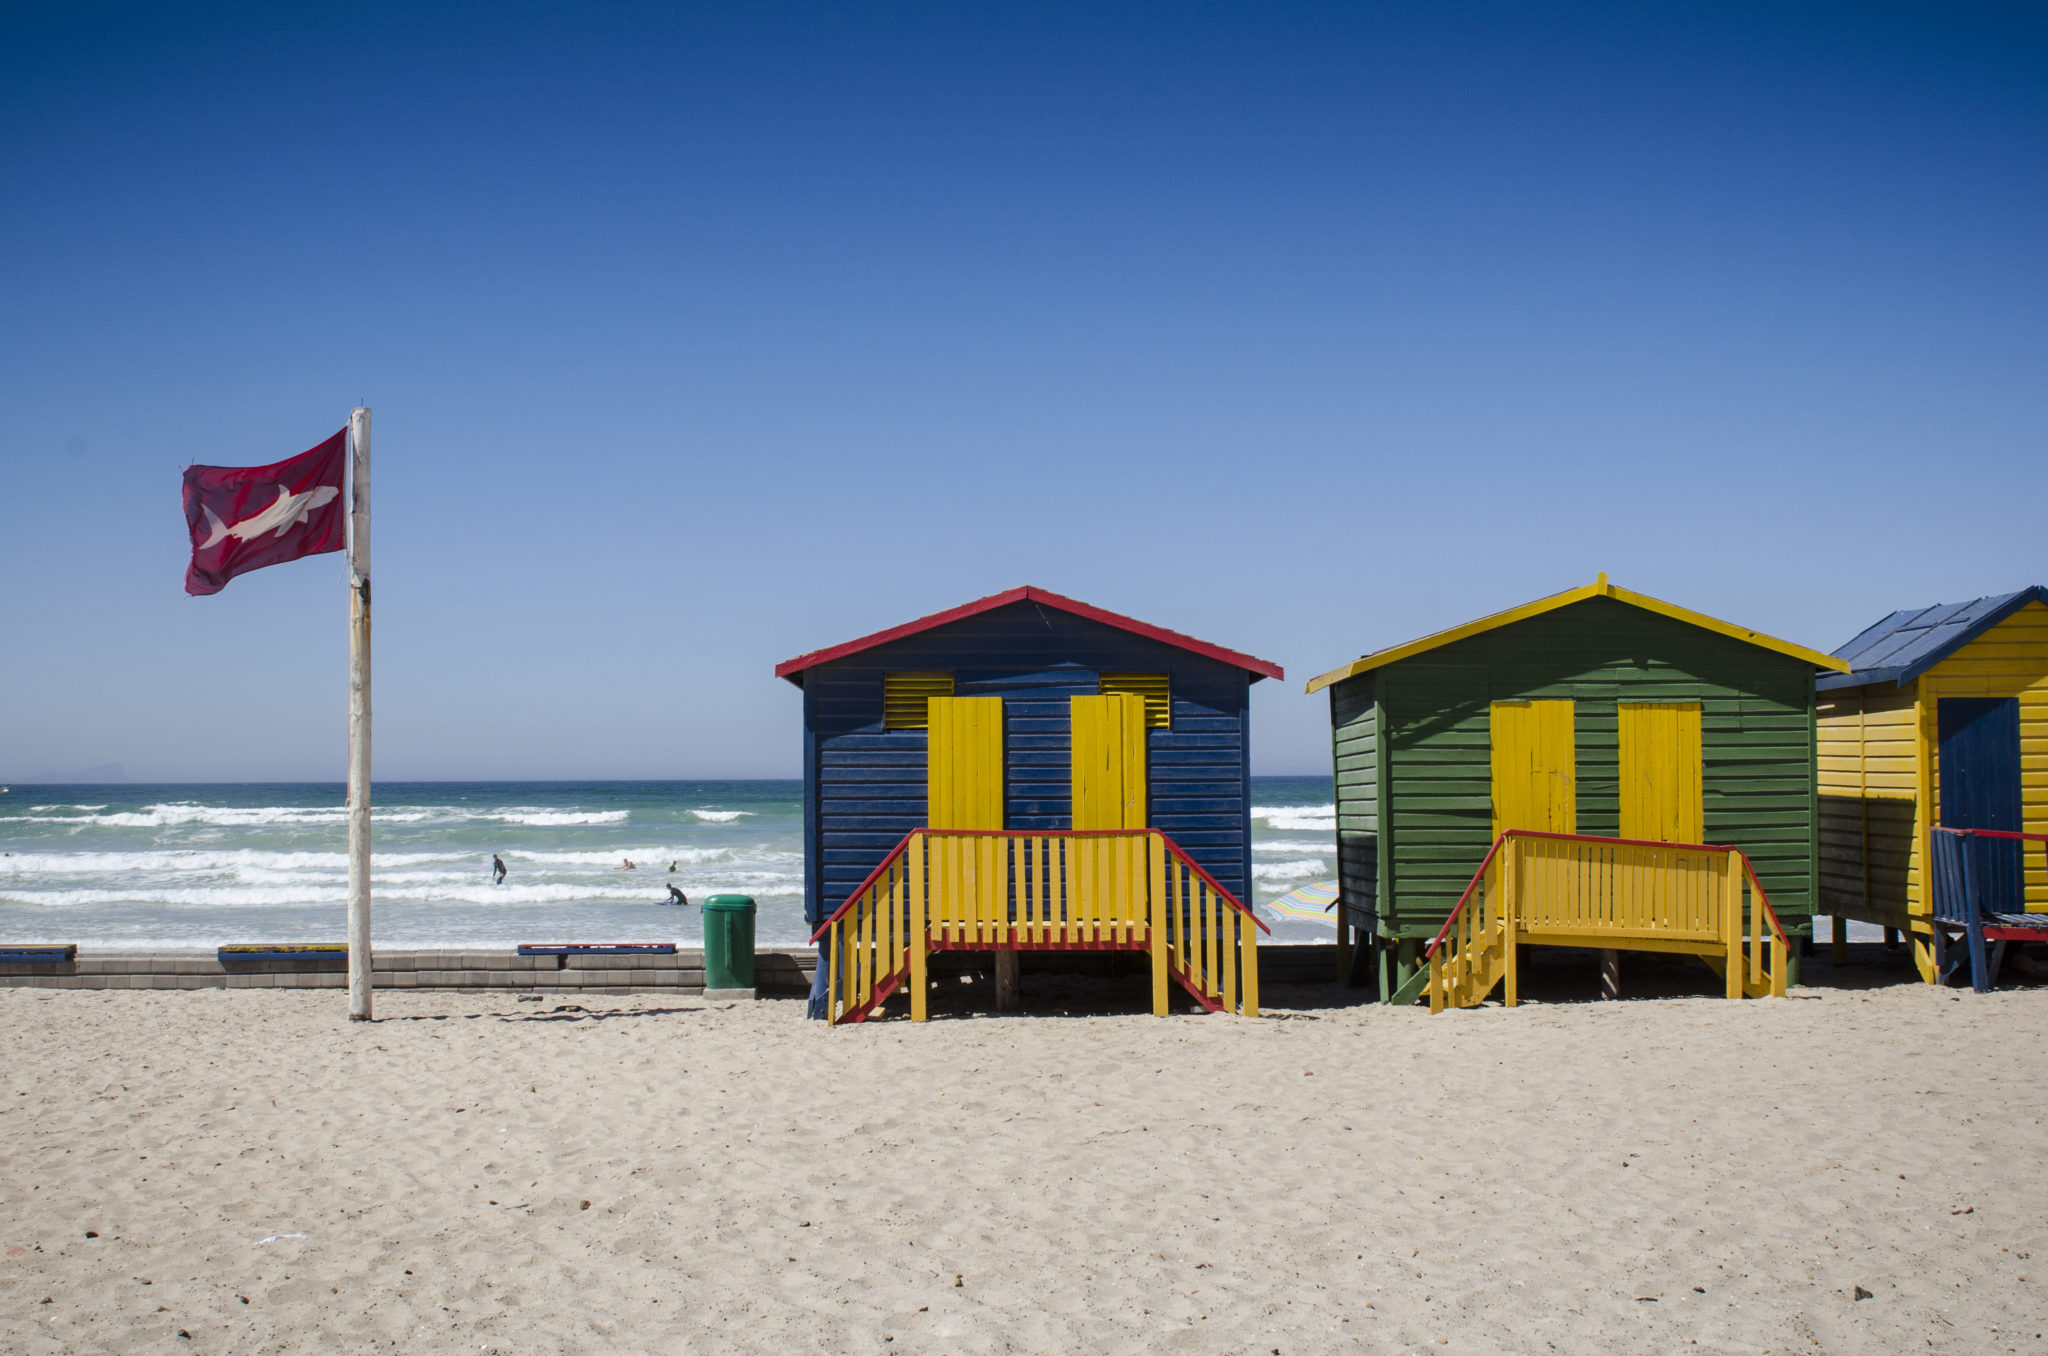 Things-to-do-in-South-Africa-Muizenberg-Beach-Colourful-Houses